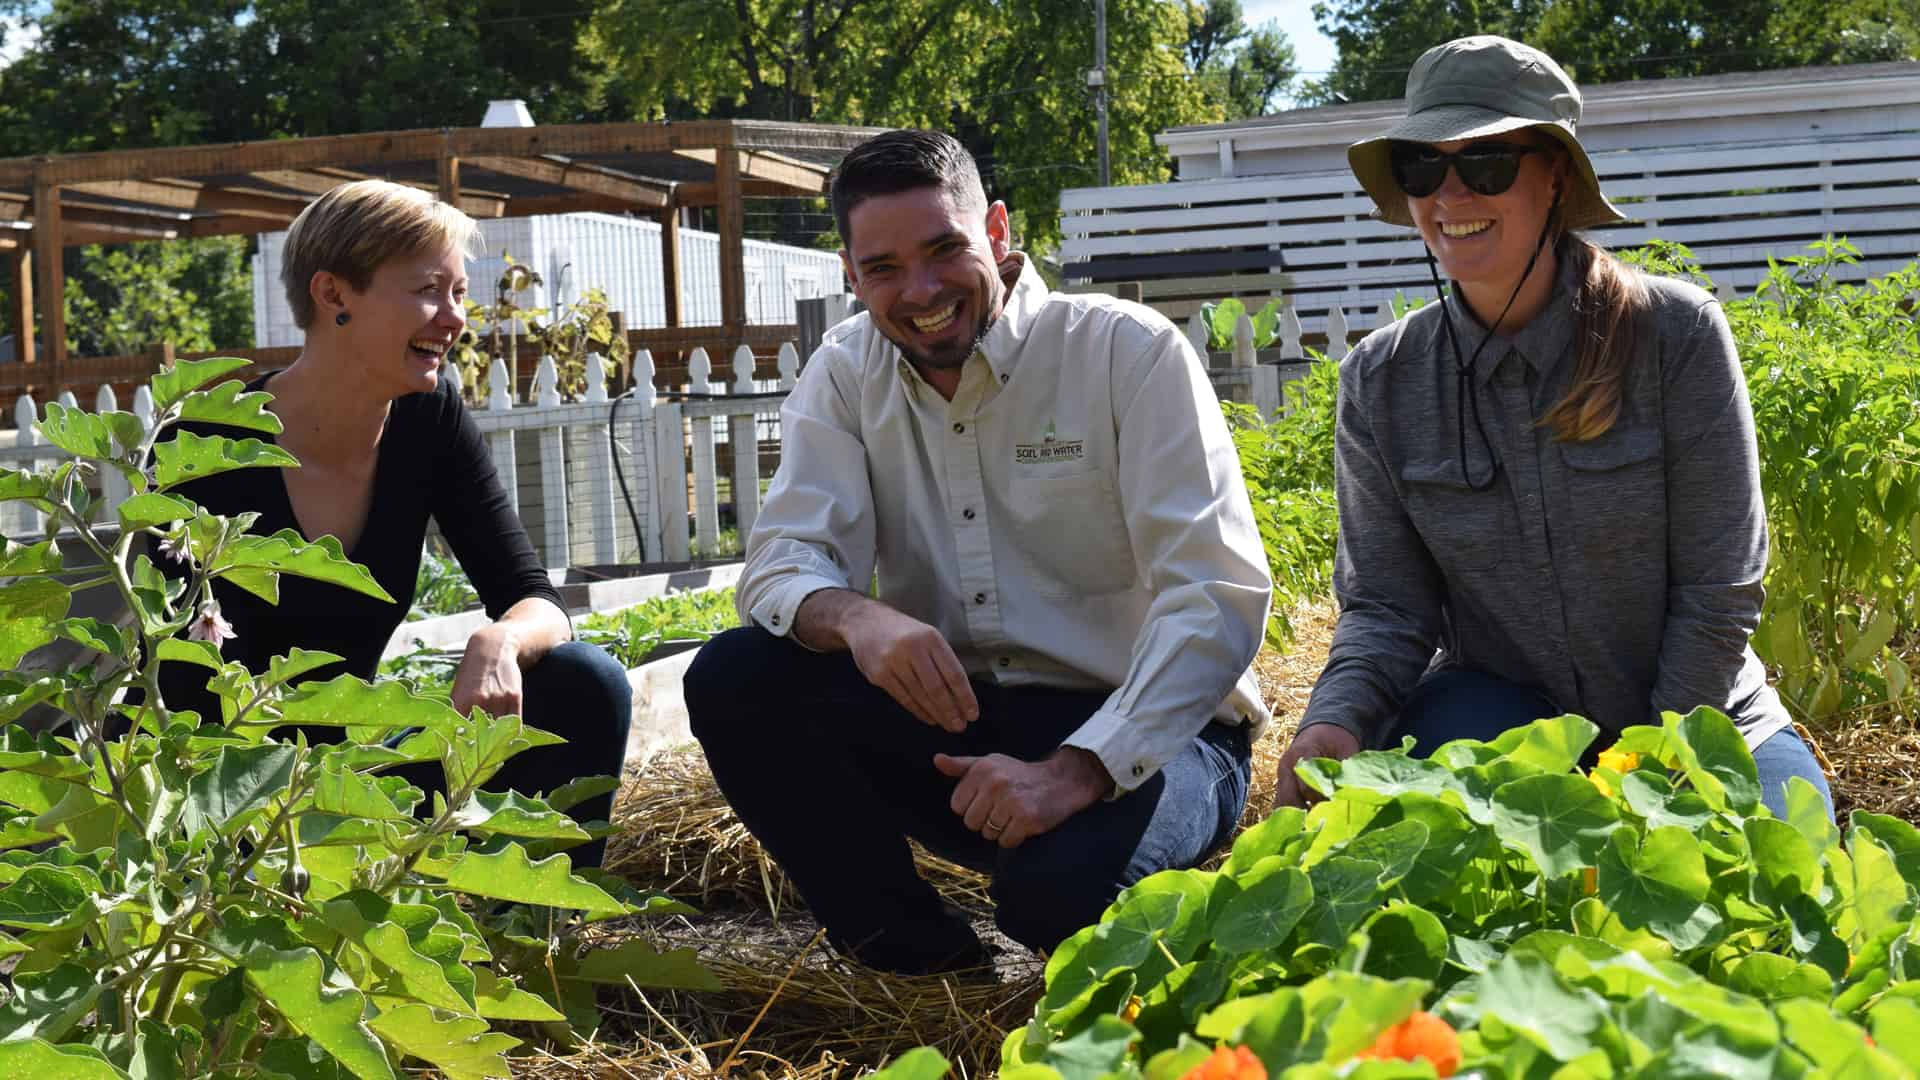 Soil Health District staff laughing in garden